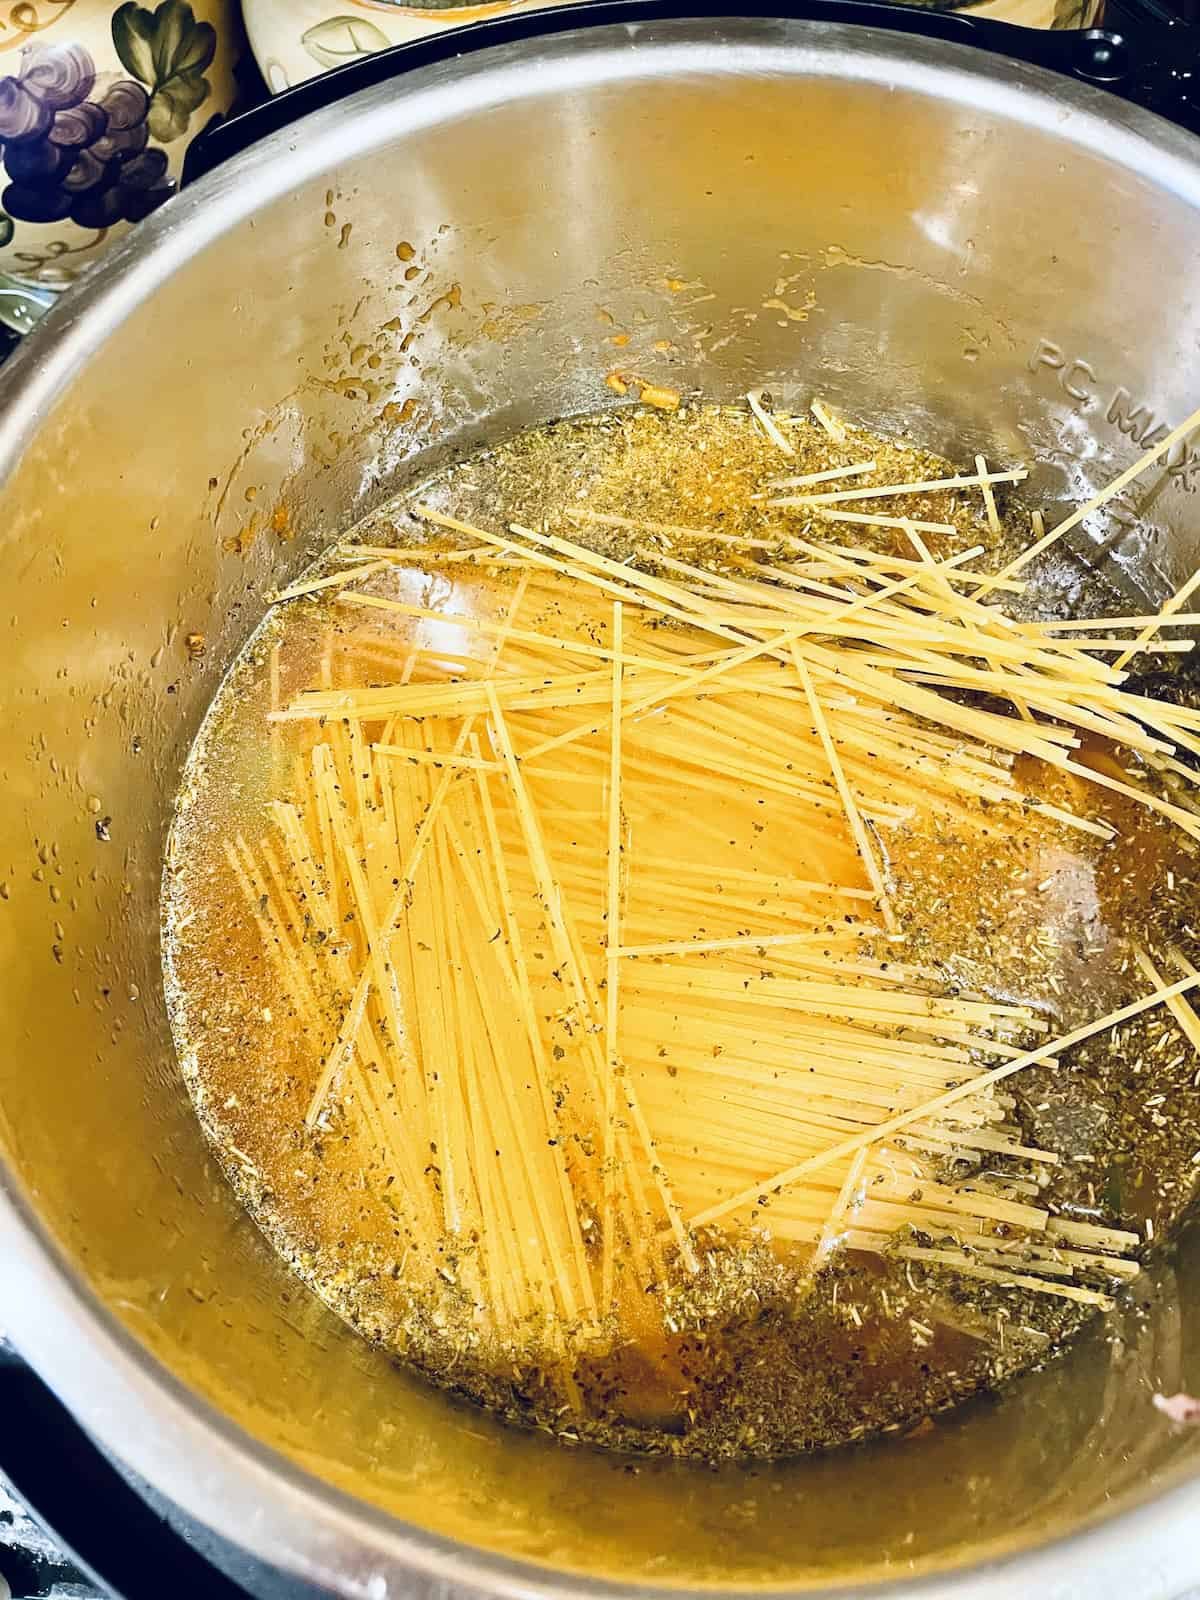 spaghetti on top of veggies with water in an instant pot